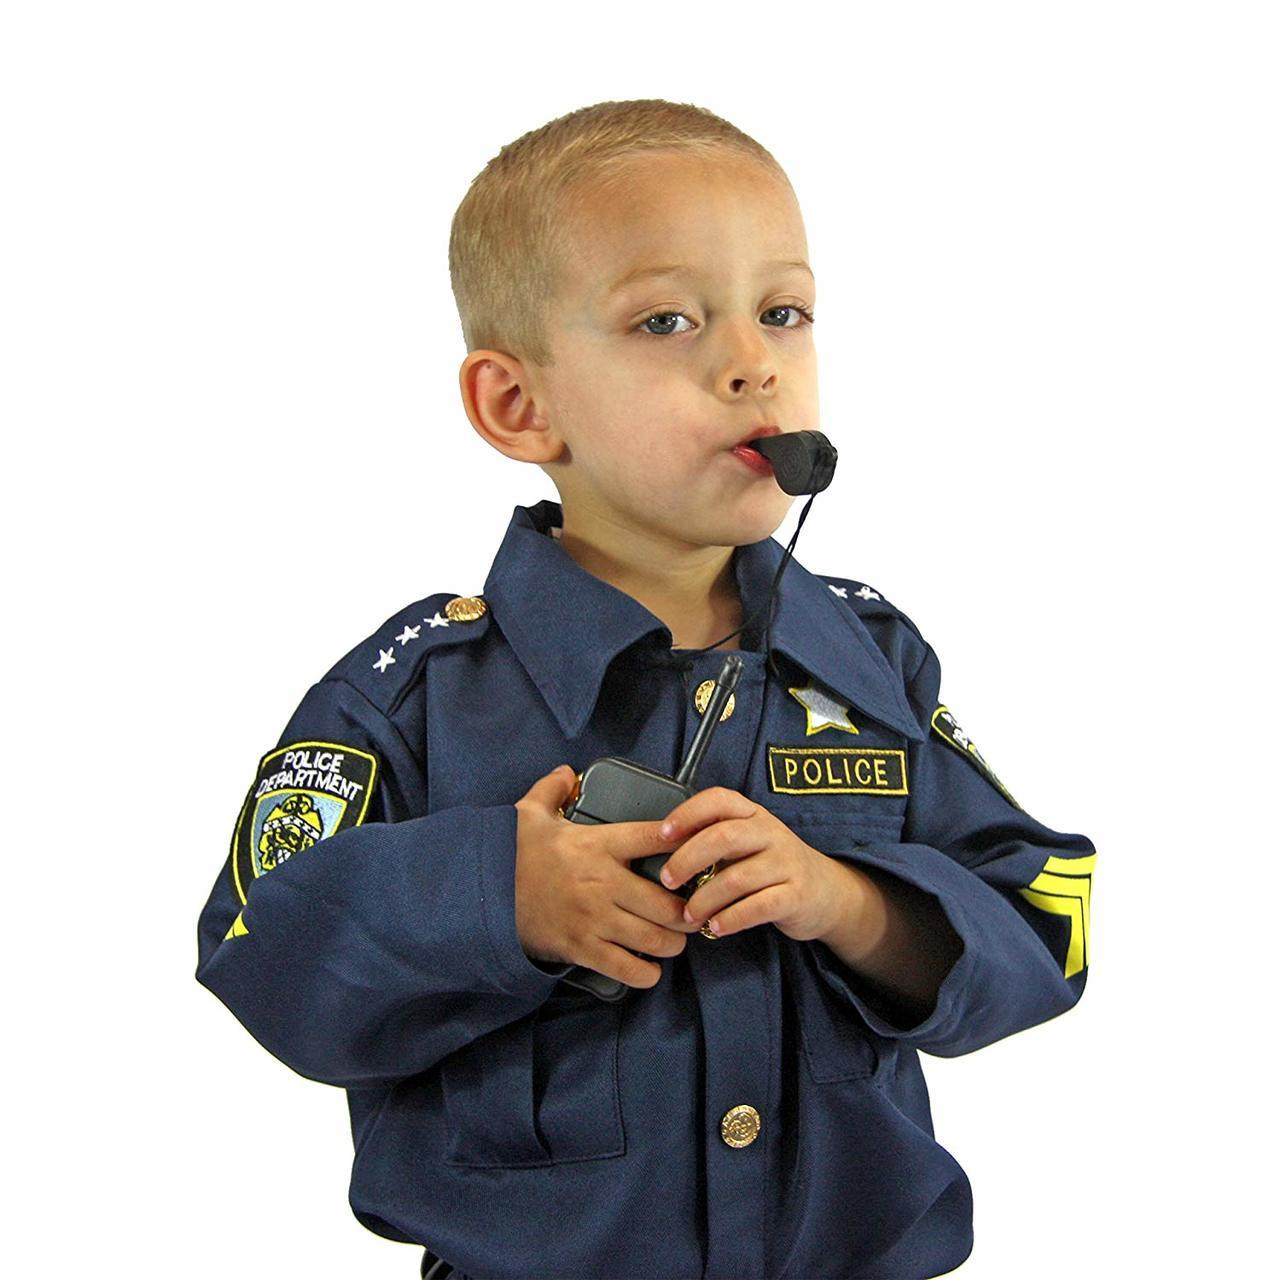 Police Deluxe Costume Set - Toddler